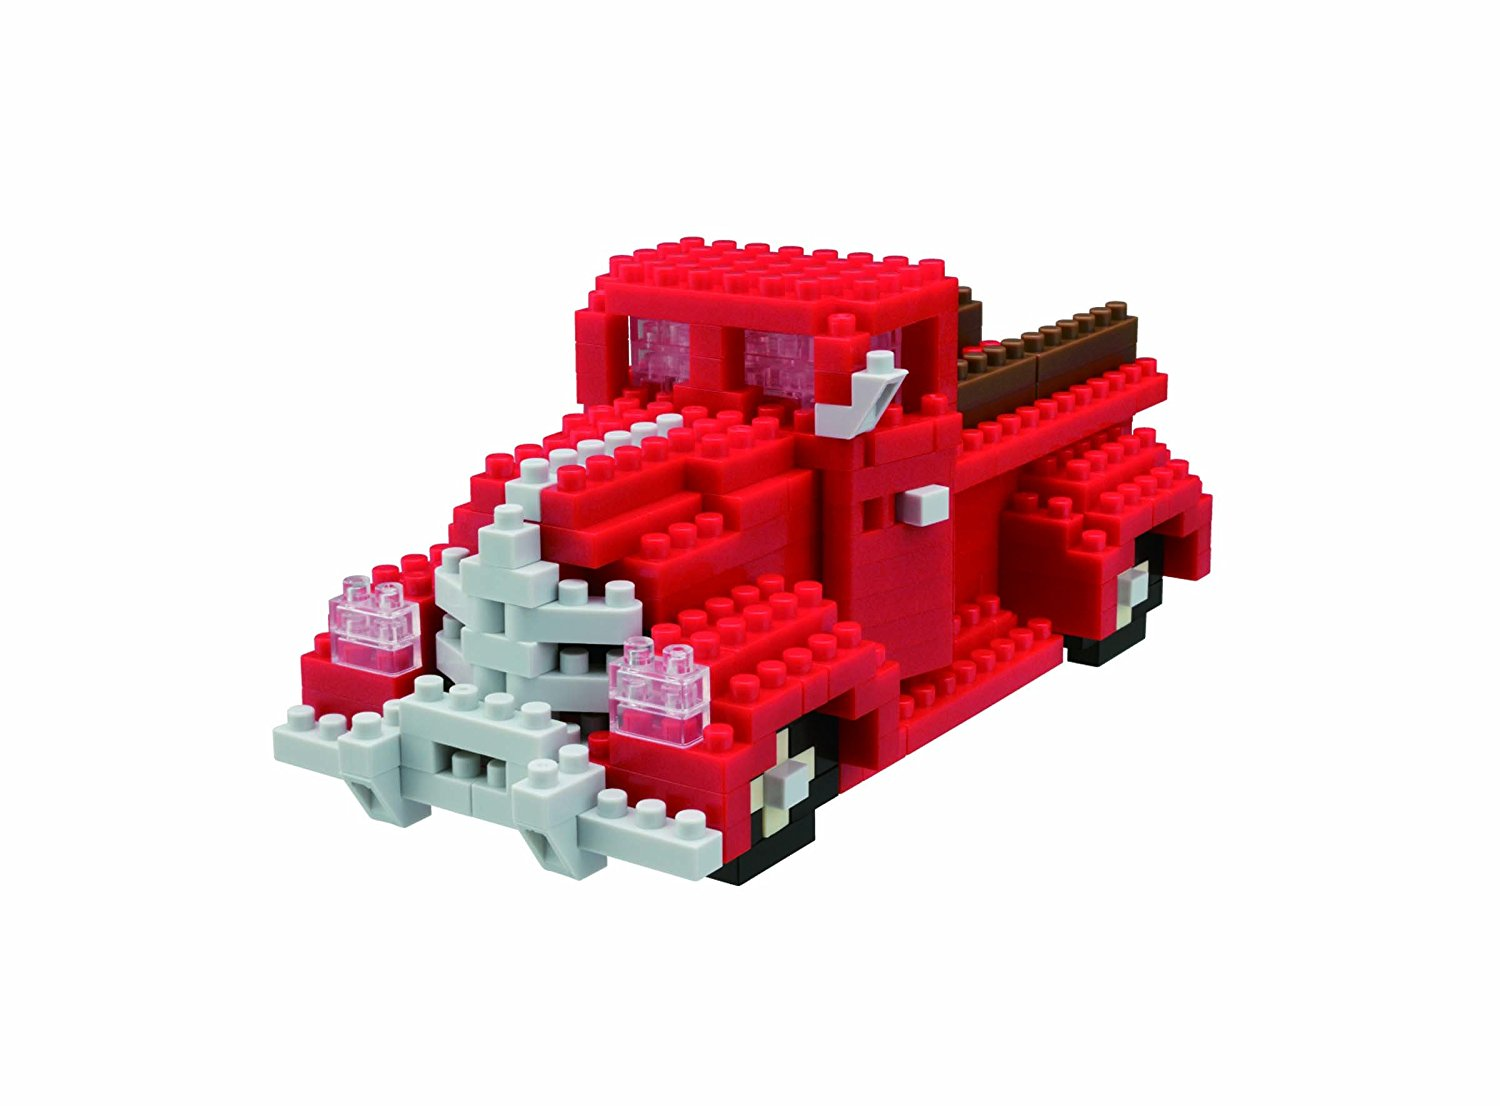 Classic Pick Up Truck Building Kit, coloured using soy ink By Nanoblock by